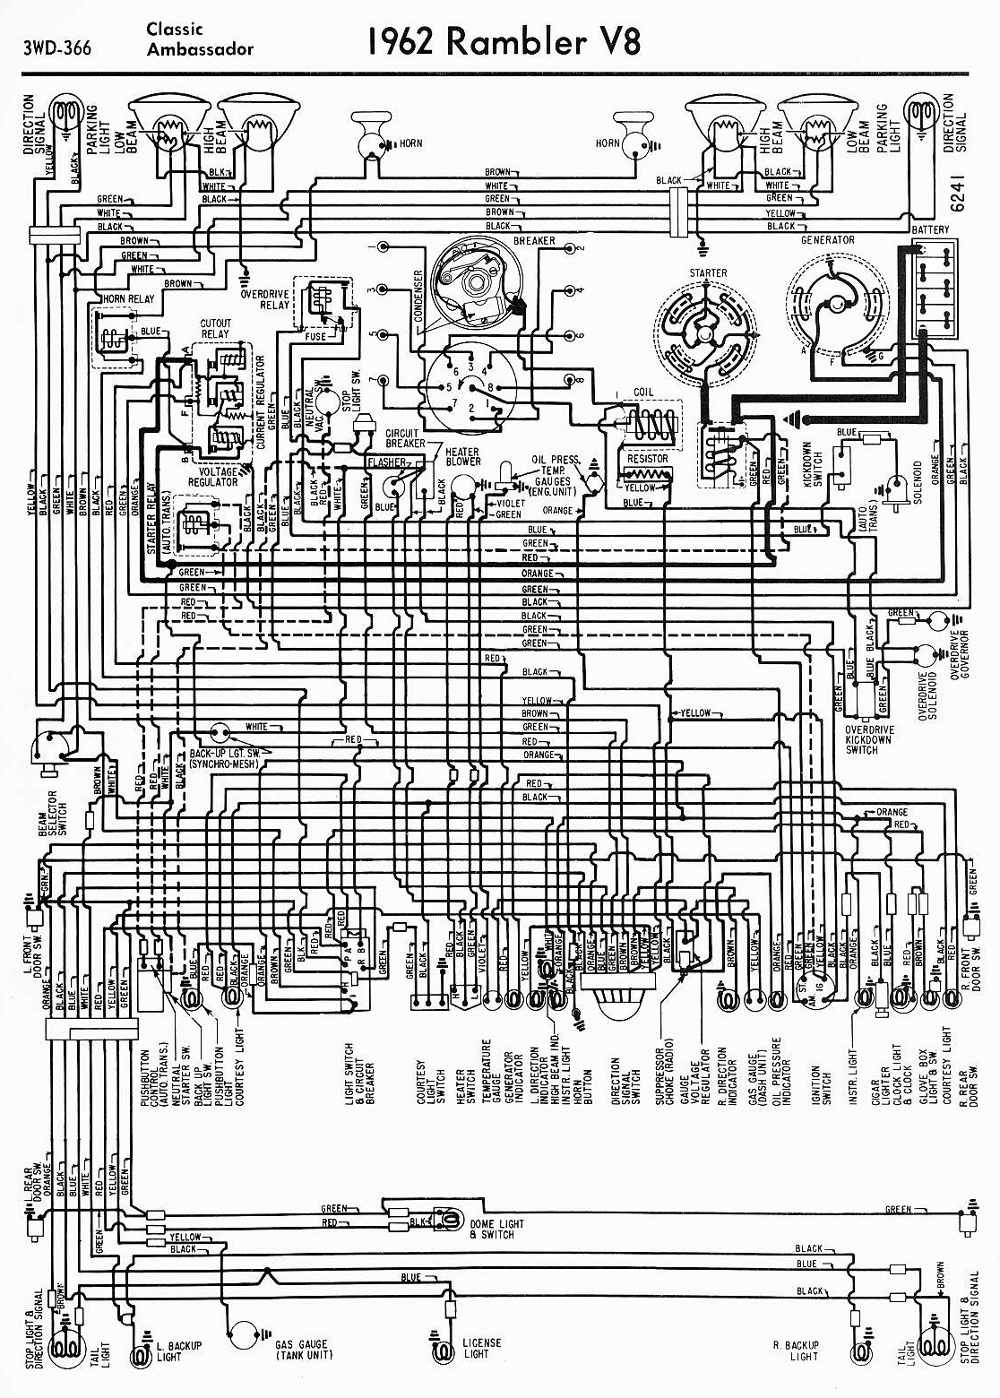 small resolution of amc car manuals wiring diagrams pdf fault codes 1973 amc ambassador 1973 amc wiring diagram